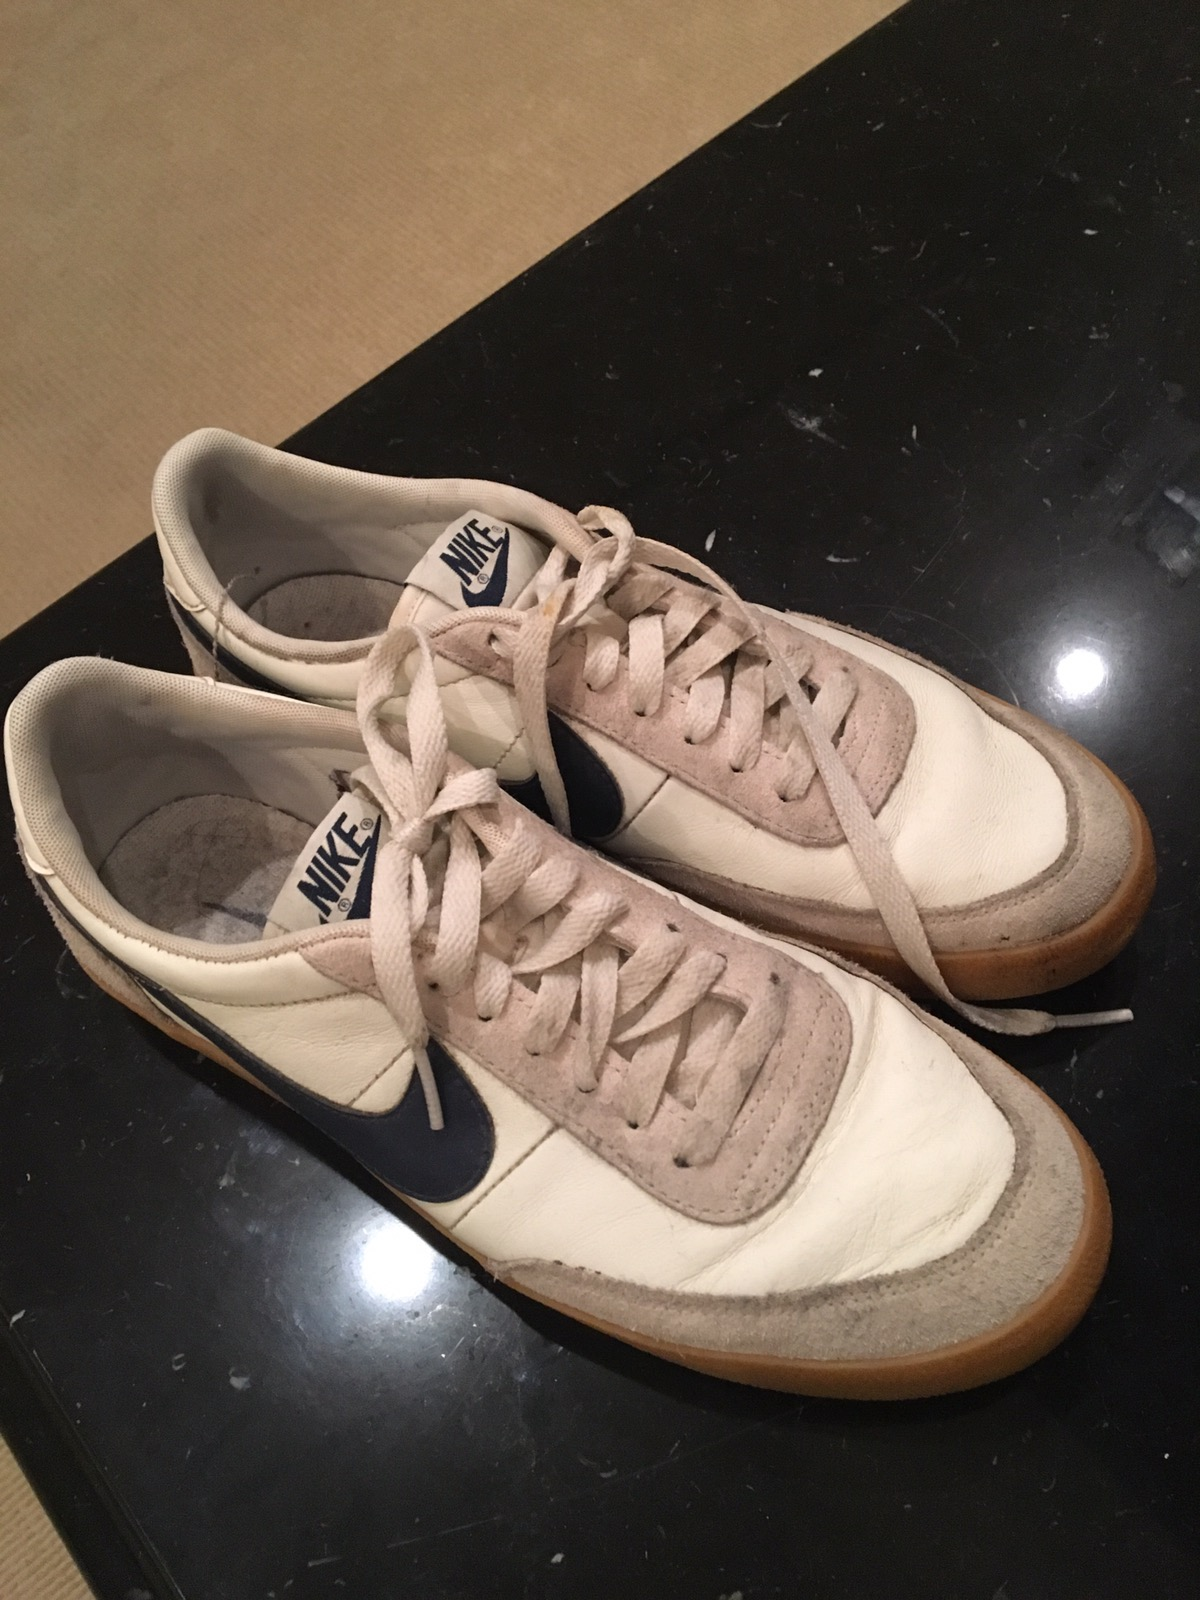 a7dc5a76268e Nike Nike Killshot 2 Size 8.5 - Low-Top Sneakers for Sale - Grailed